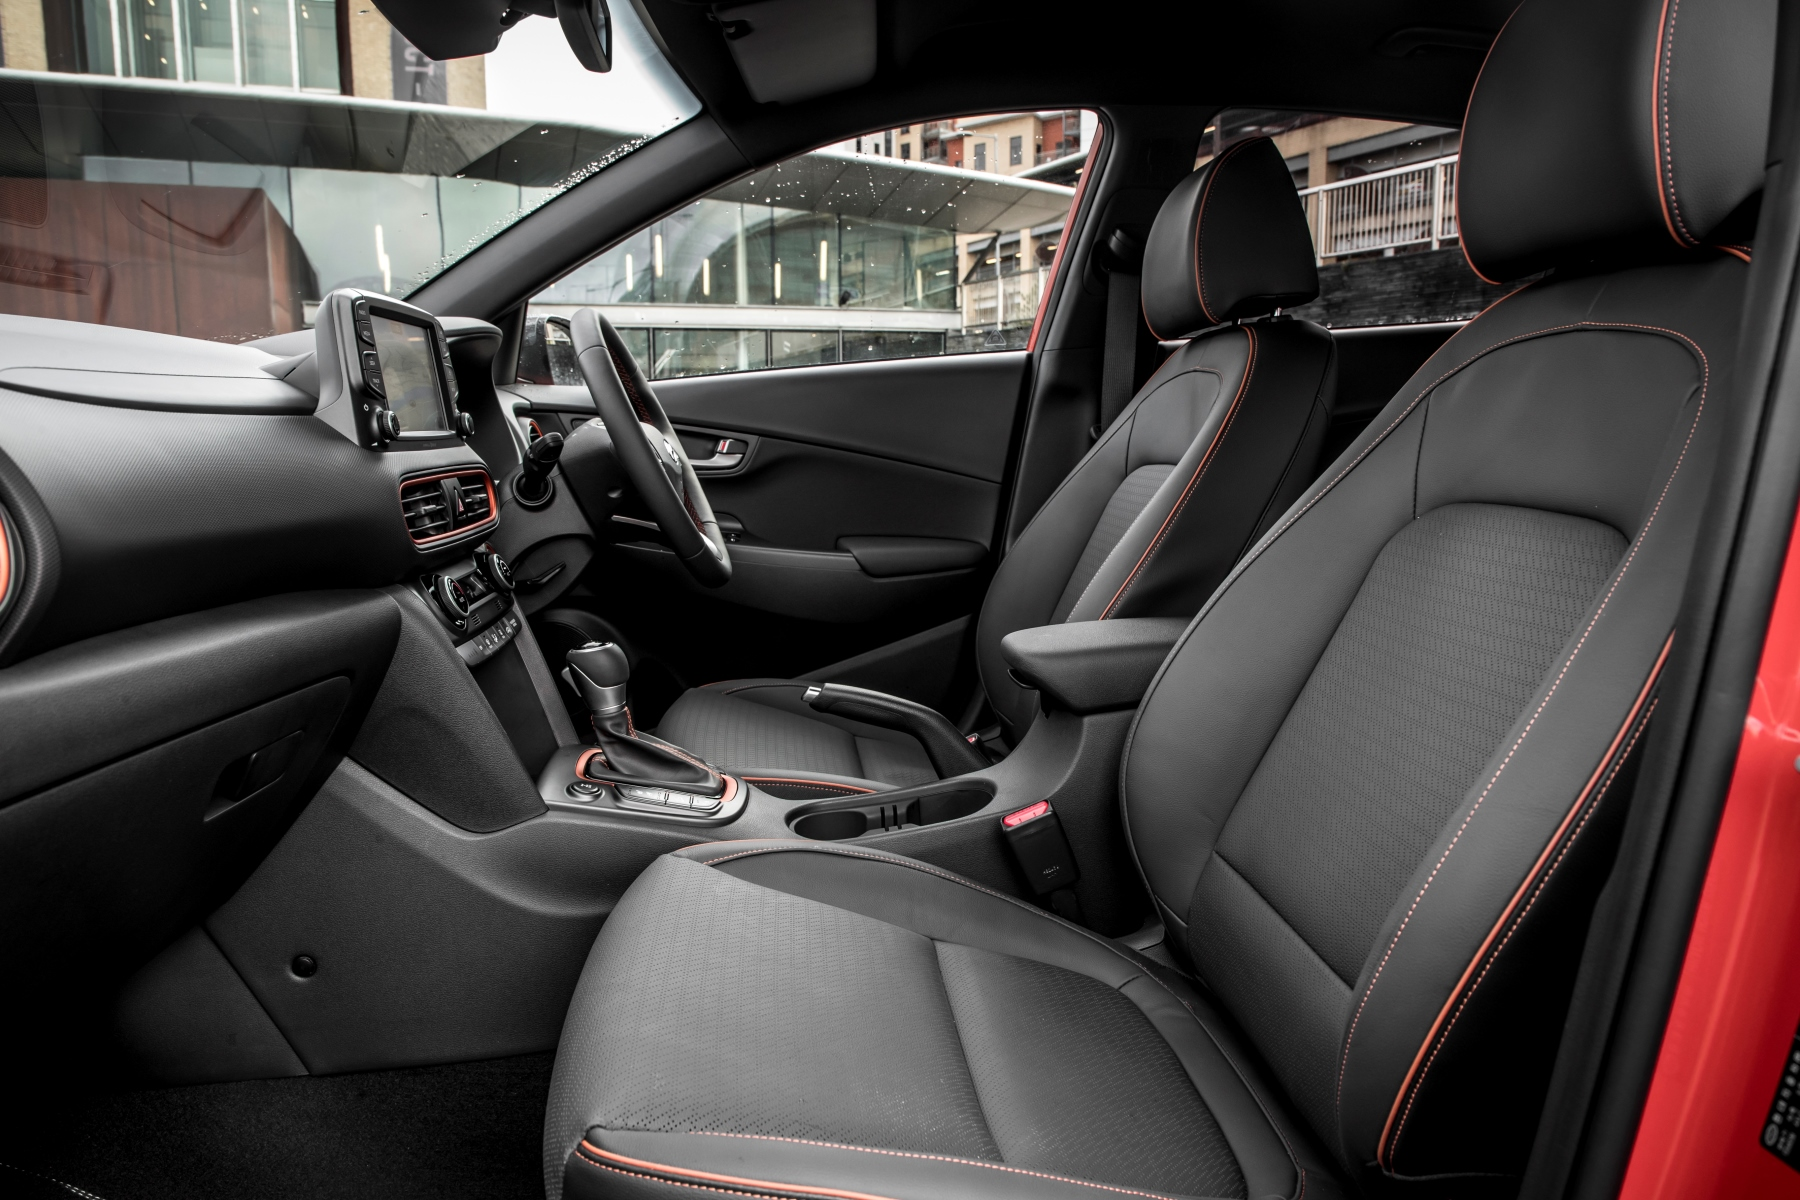 hyundai kona review automotive blog. Black Bedroom Furniture Sets. Home Design Ideas